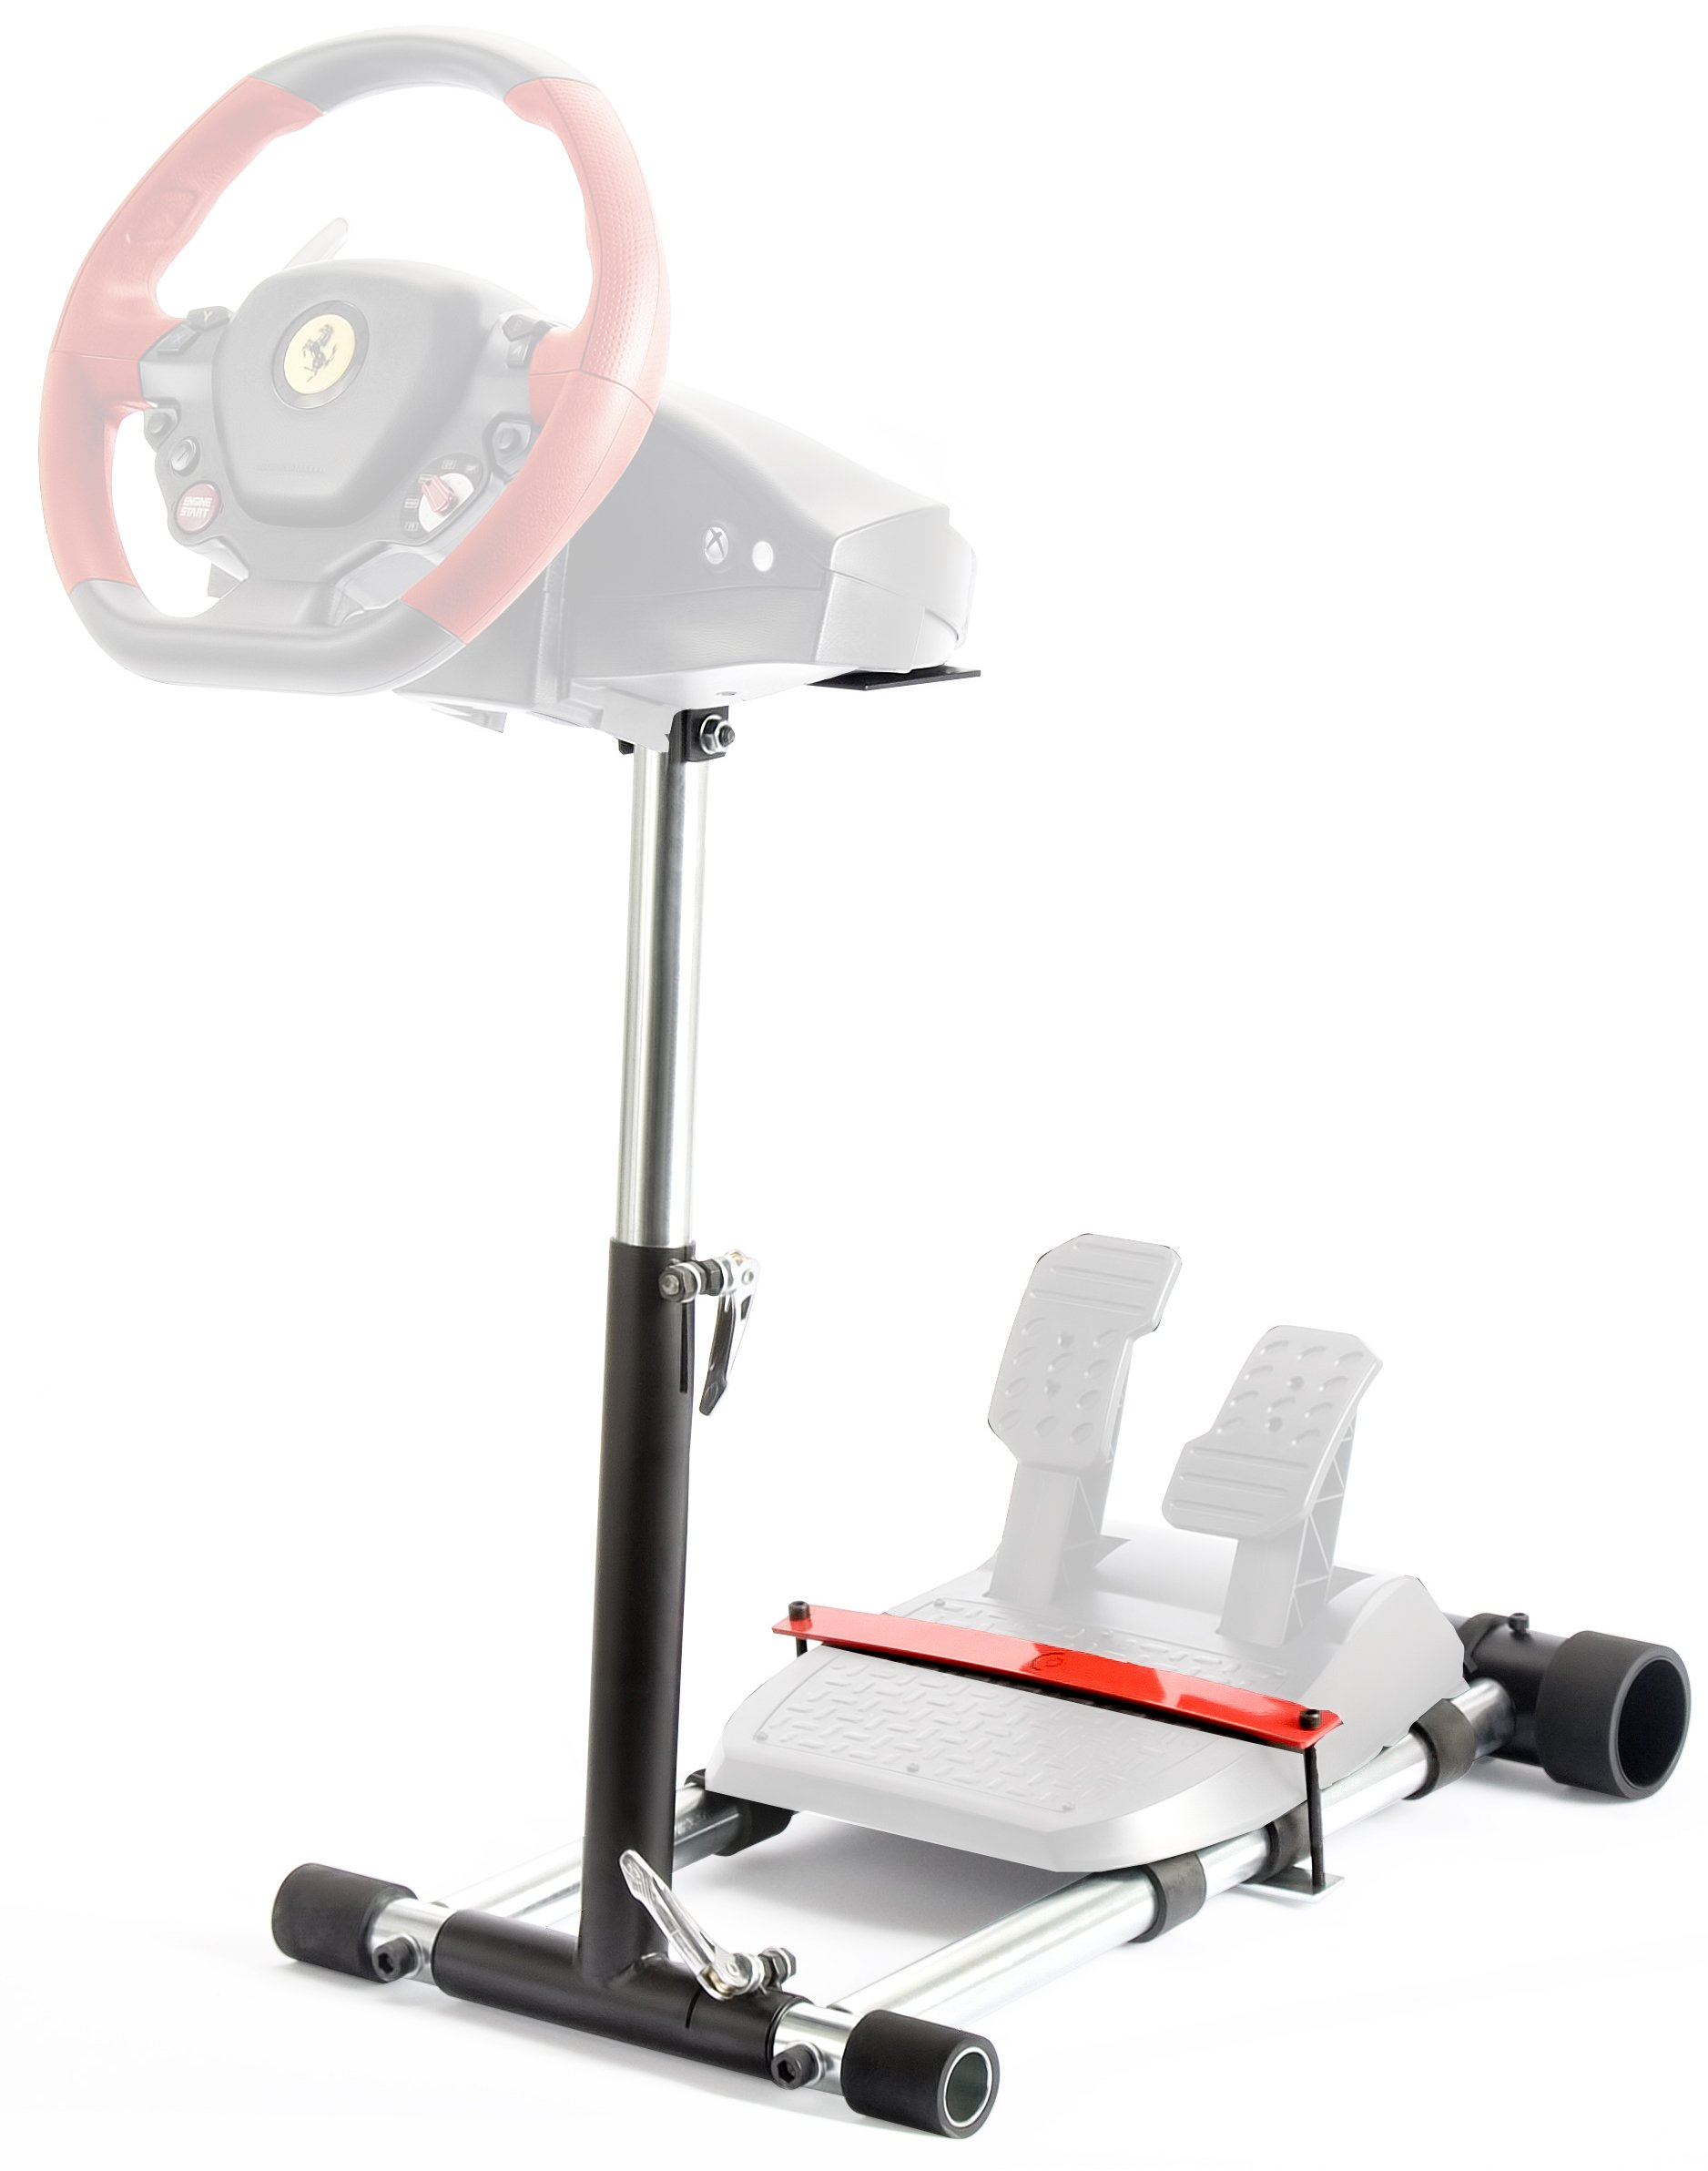 Wheel Stand Pro F458 Steering Compatible with Thrustmaster 458 (Xbox 360 Version), F458 Spider (Xbox One), T80,T100, RGT, Ferrari GT,F430; Logitech Driving Force GT wheel. V2: Wheel/Pedals Not included product image